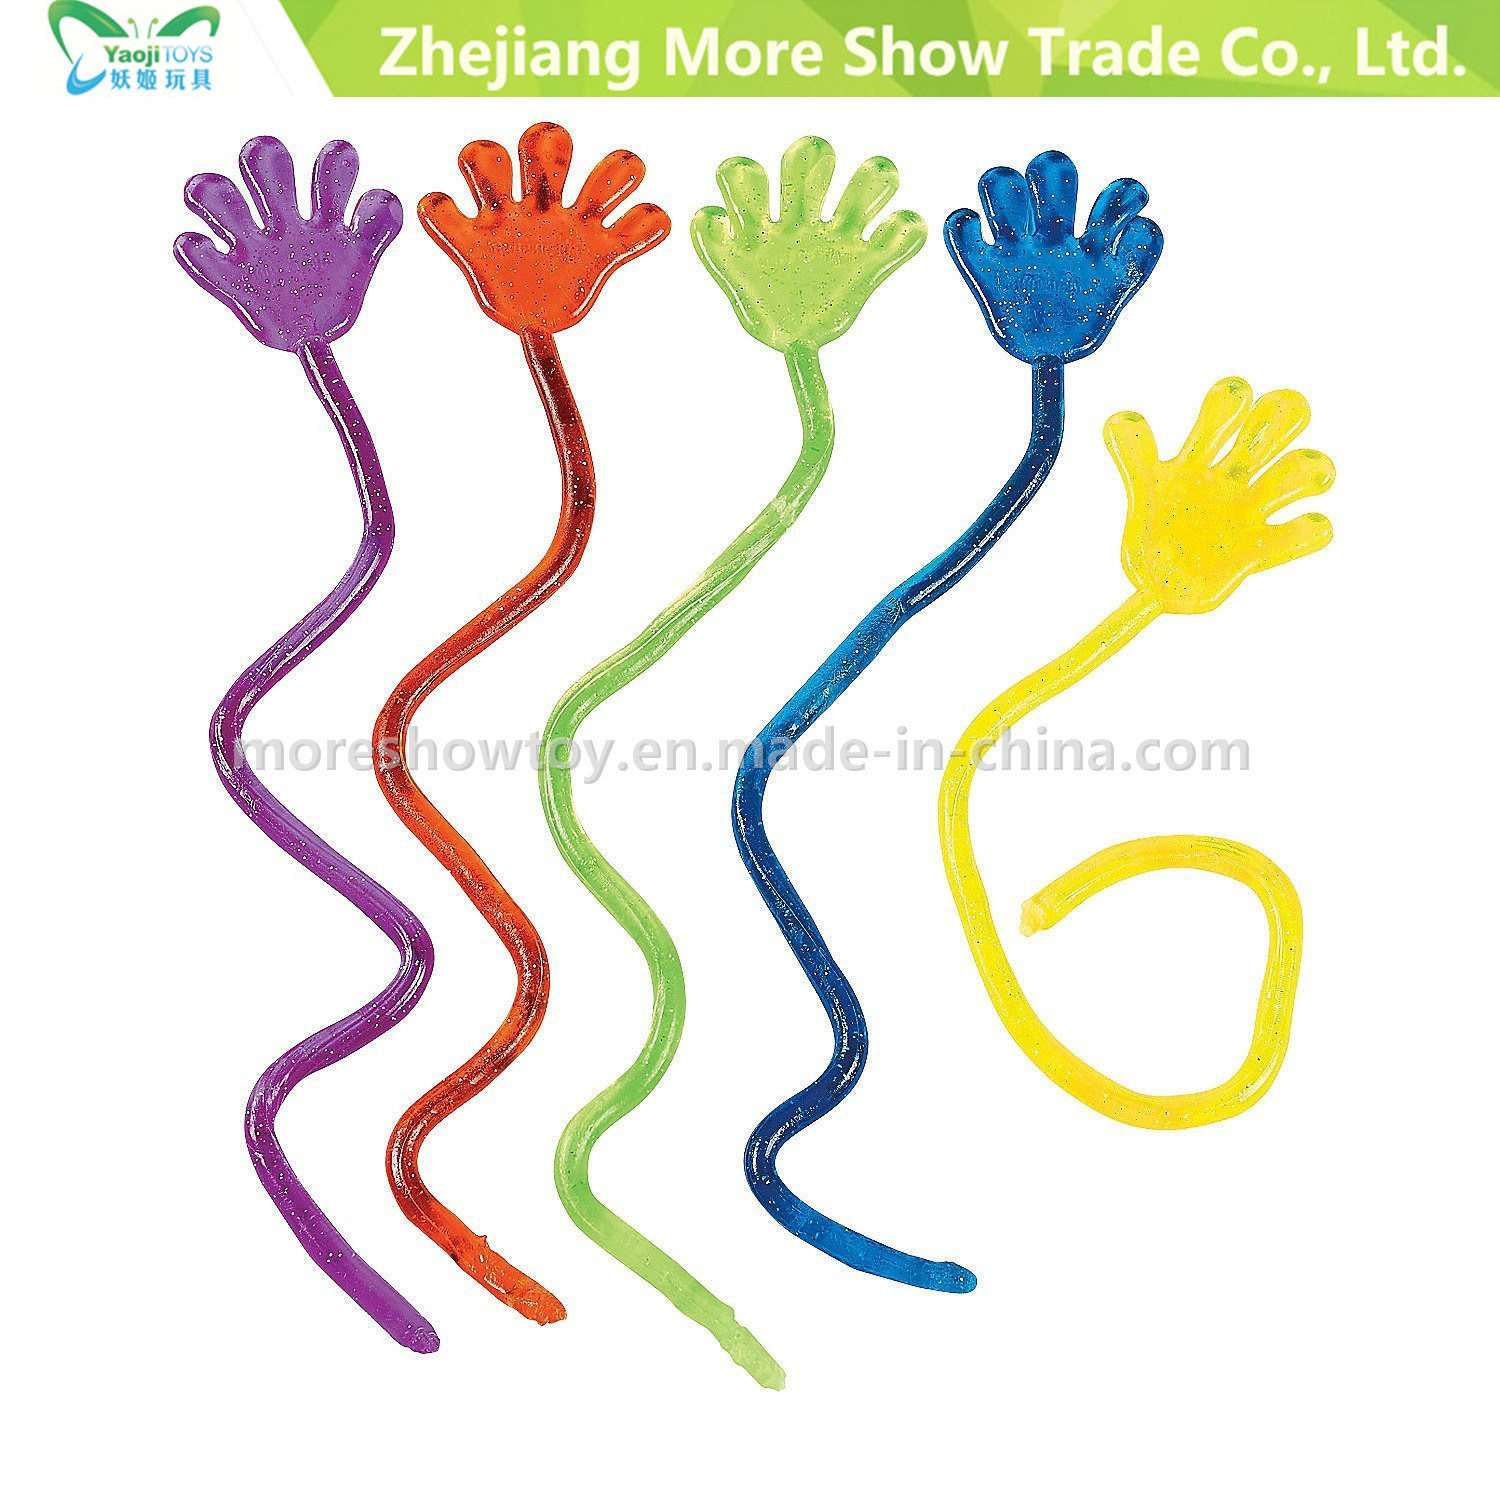 Mini Sticky Hands Kids Party Favours Toys Vending Novelty